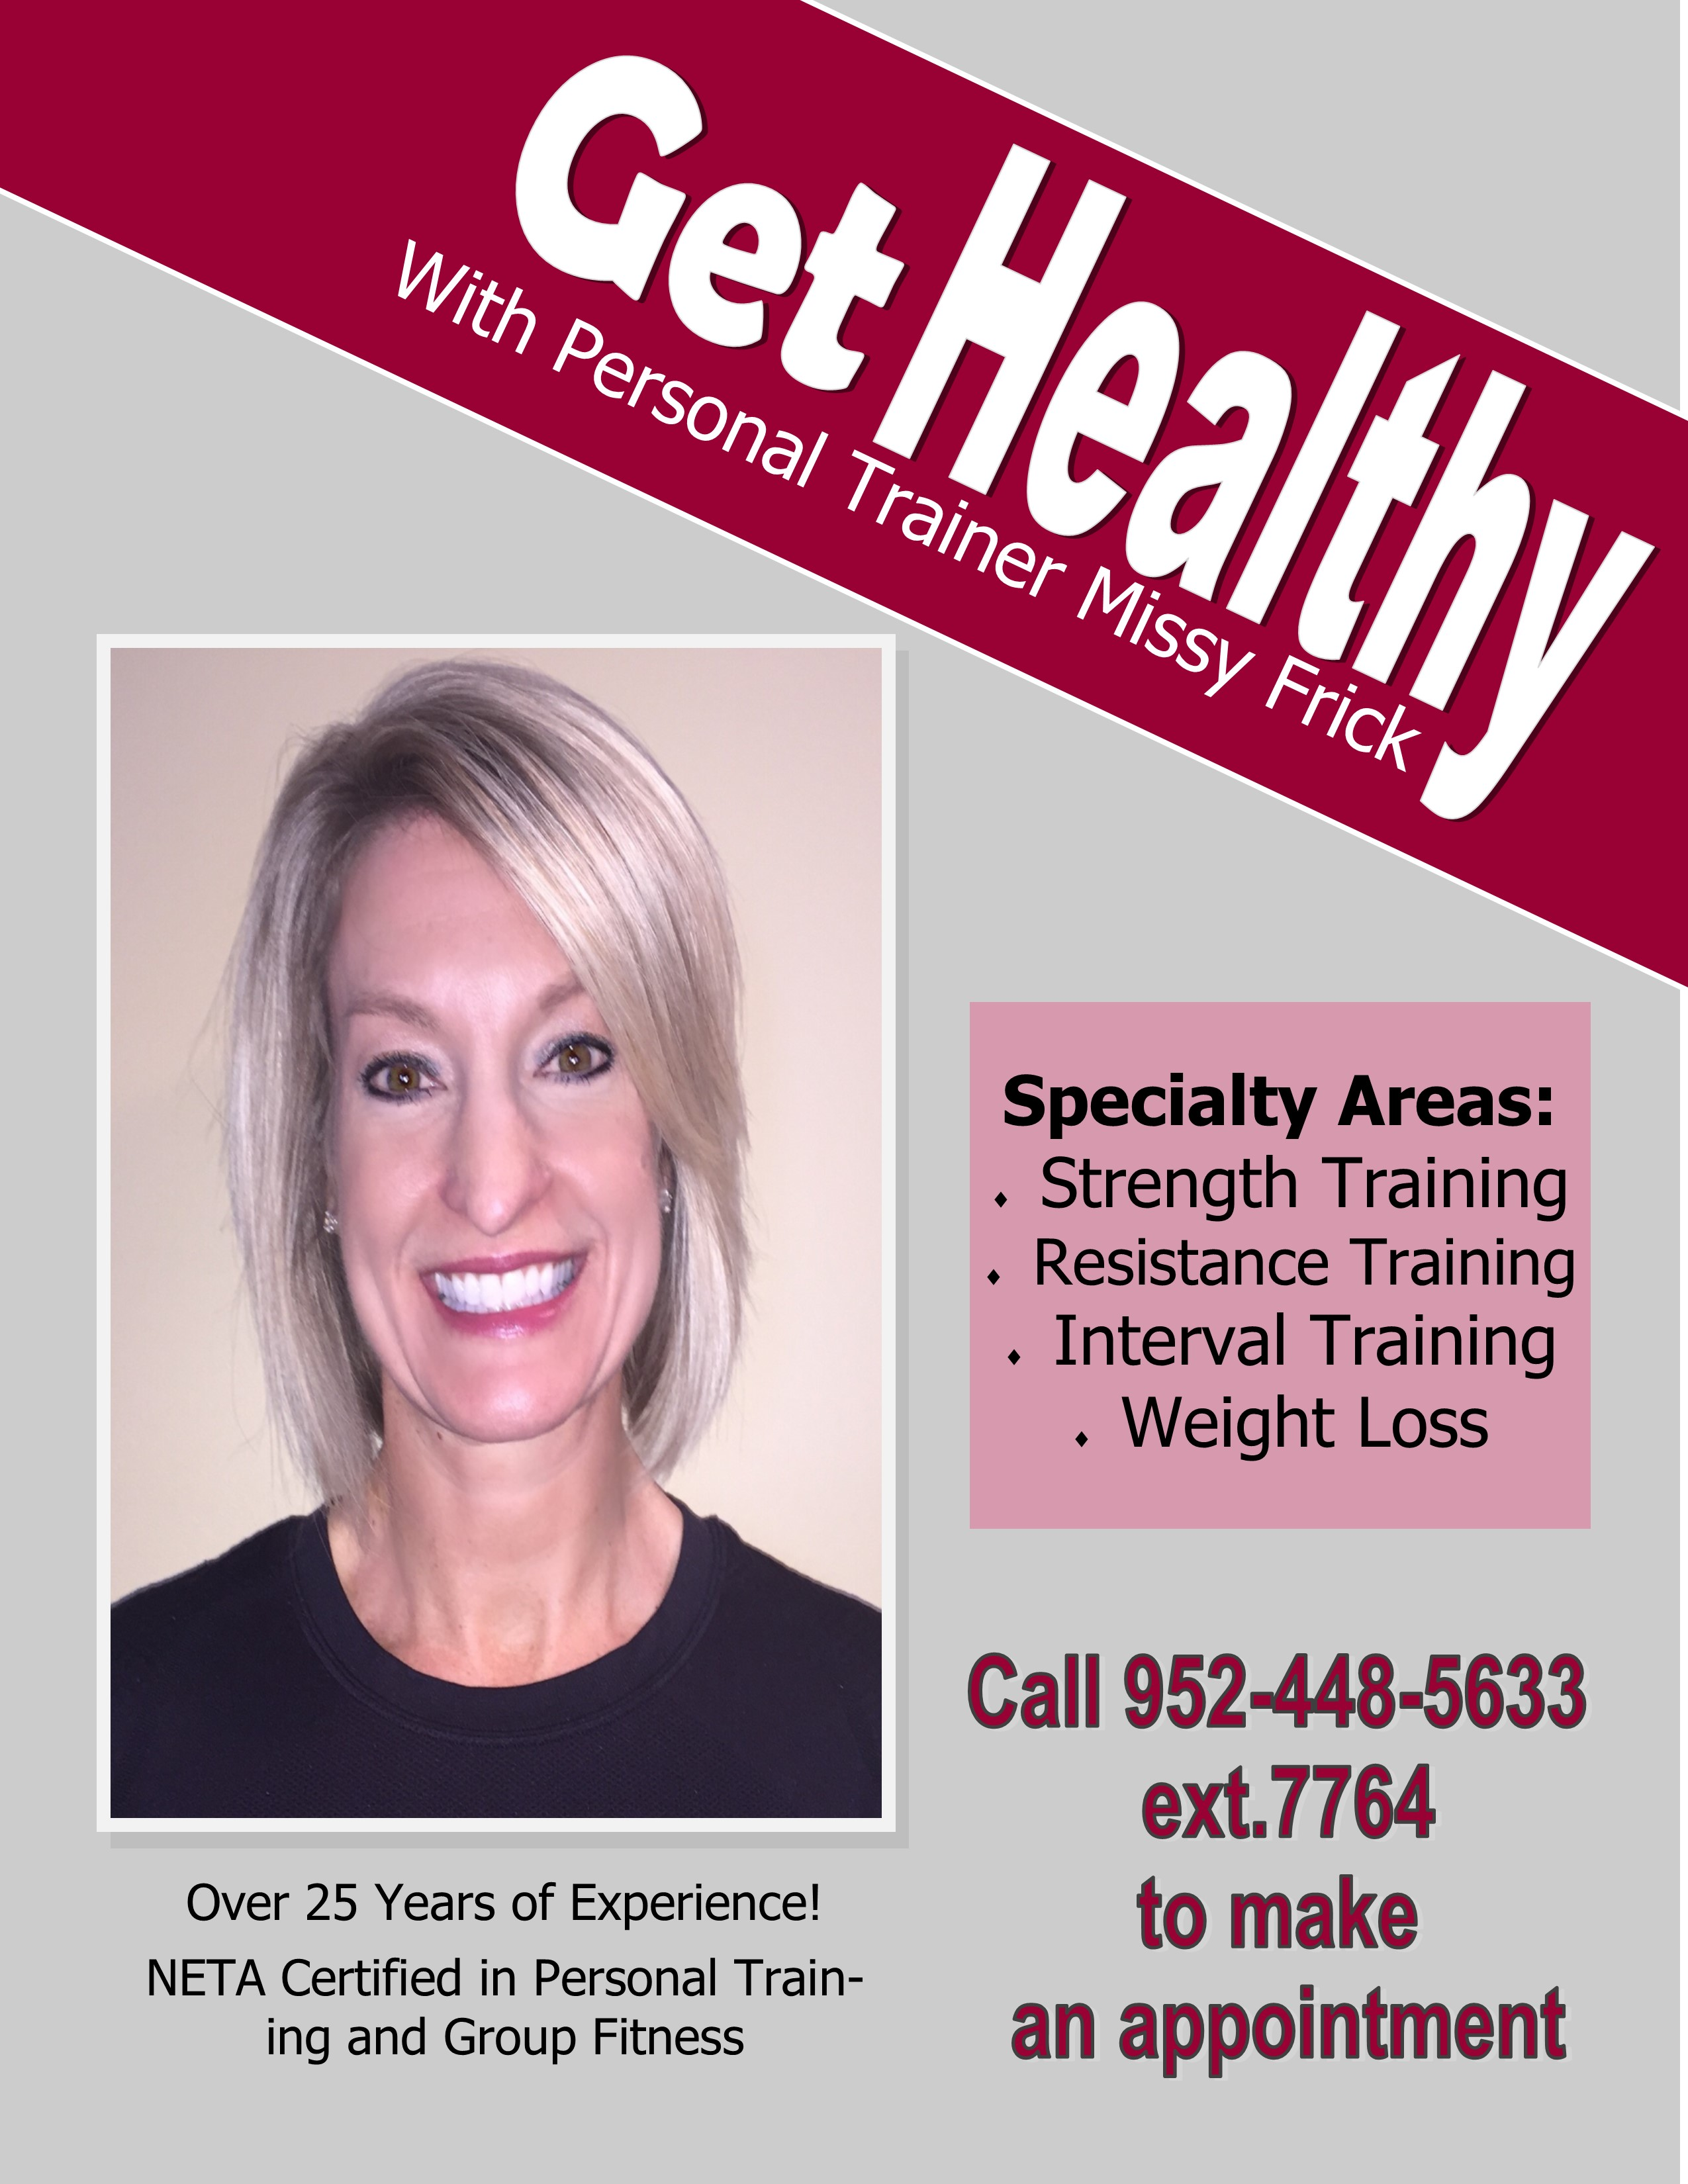 Personal trainers chaska parks and recreation department and general operation of the cardio equipment at the chaska community center by appointment call a personal trainer from above to make an appointment 1betcityfo Image collections